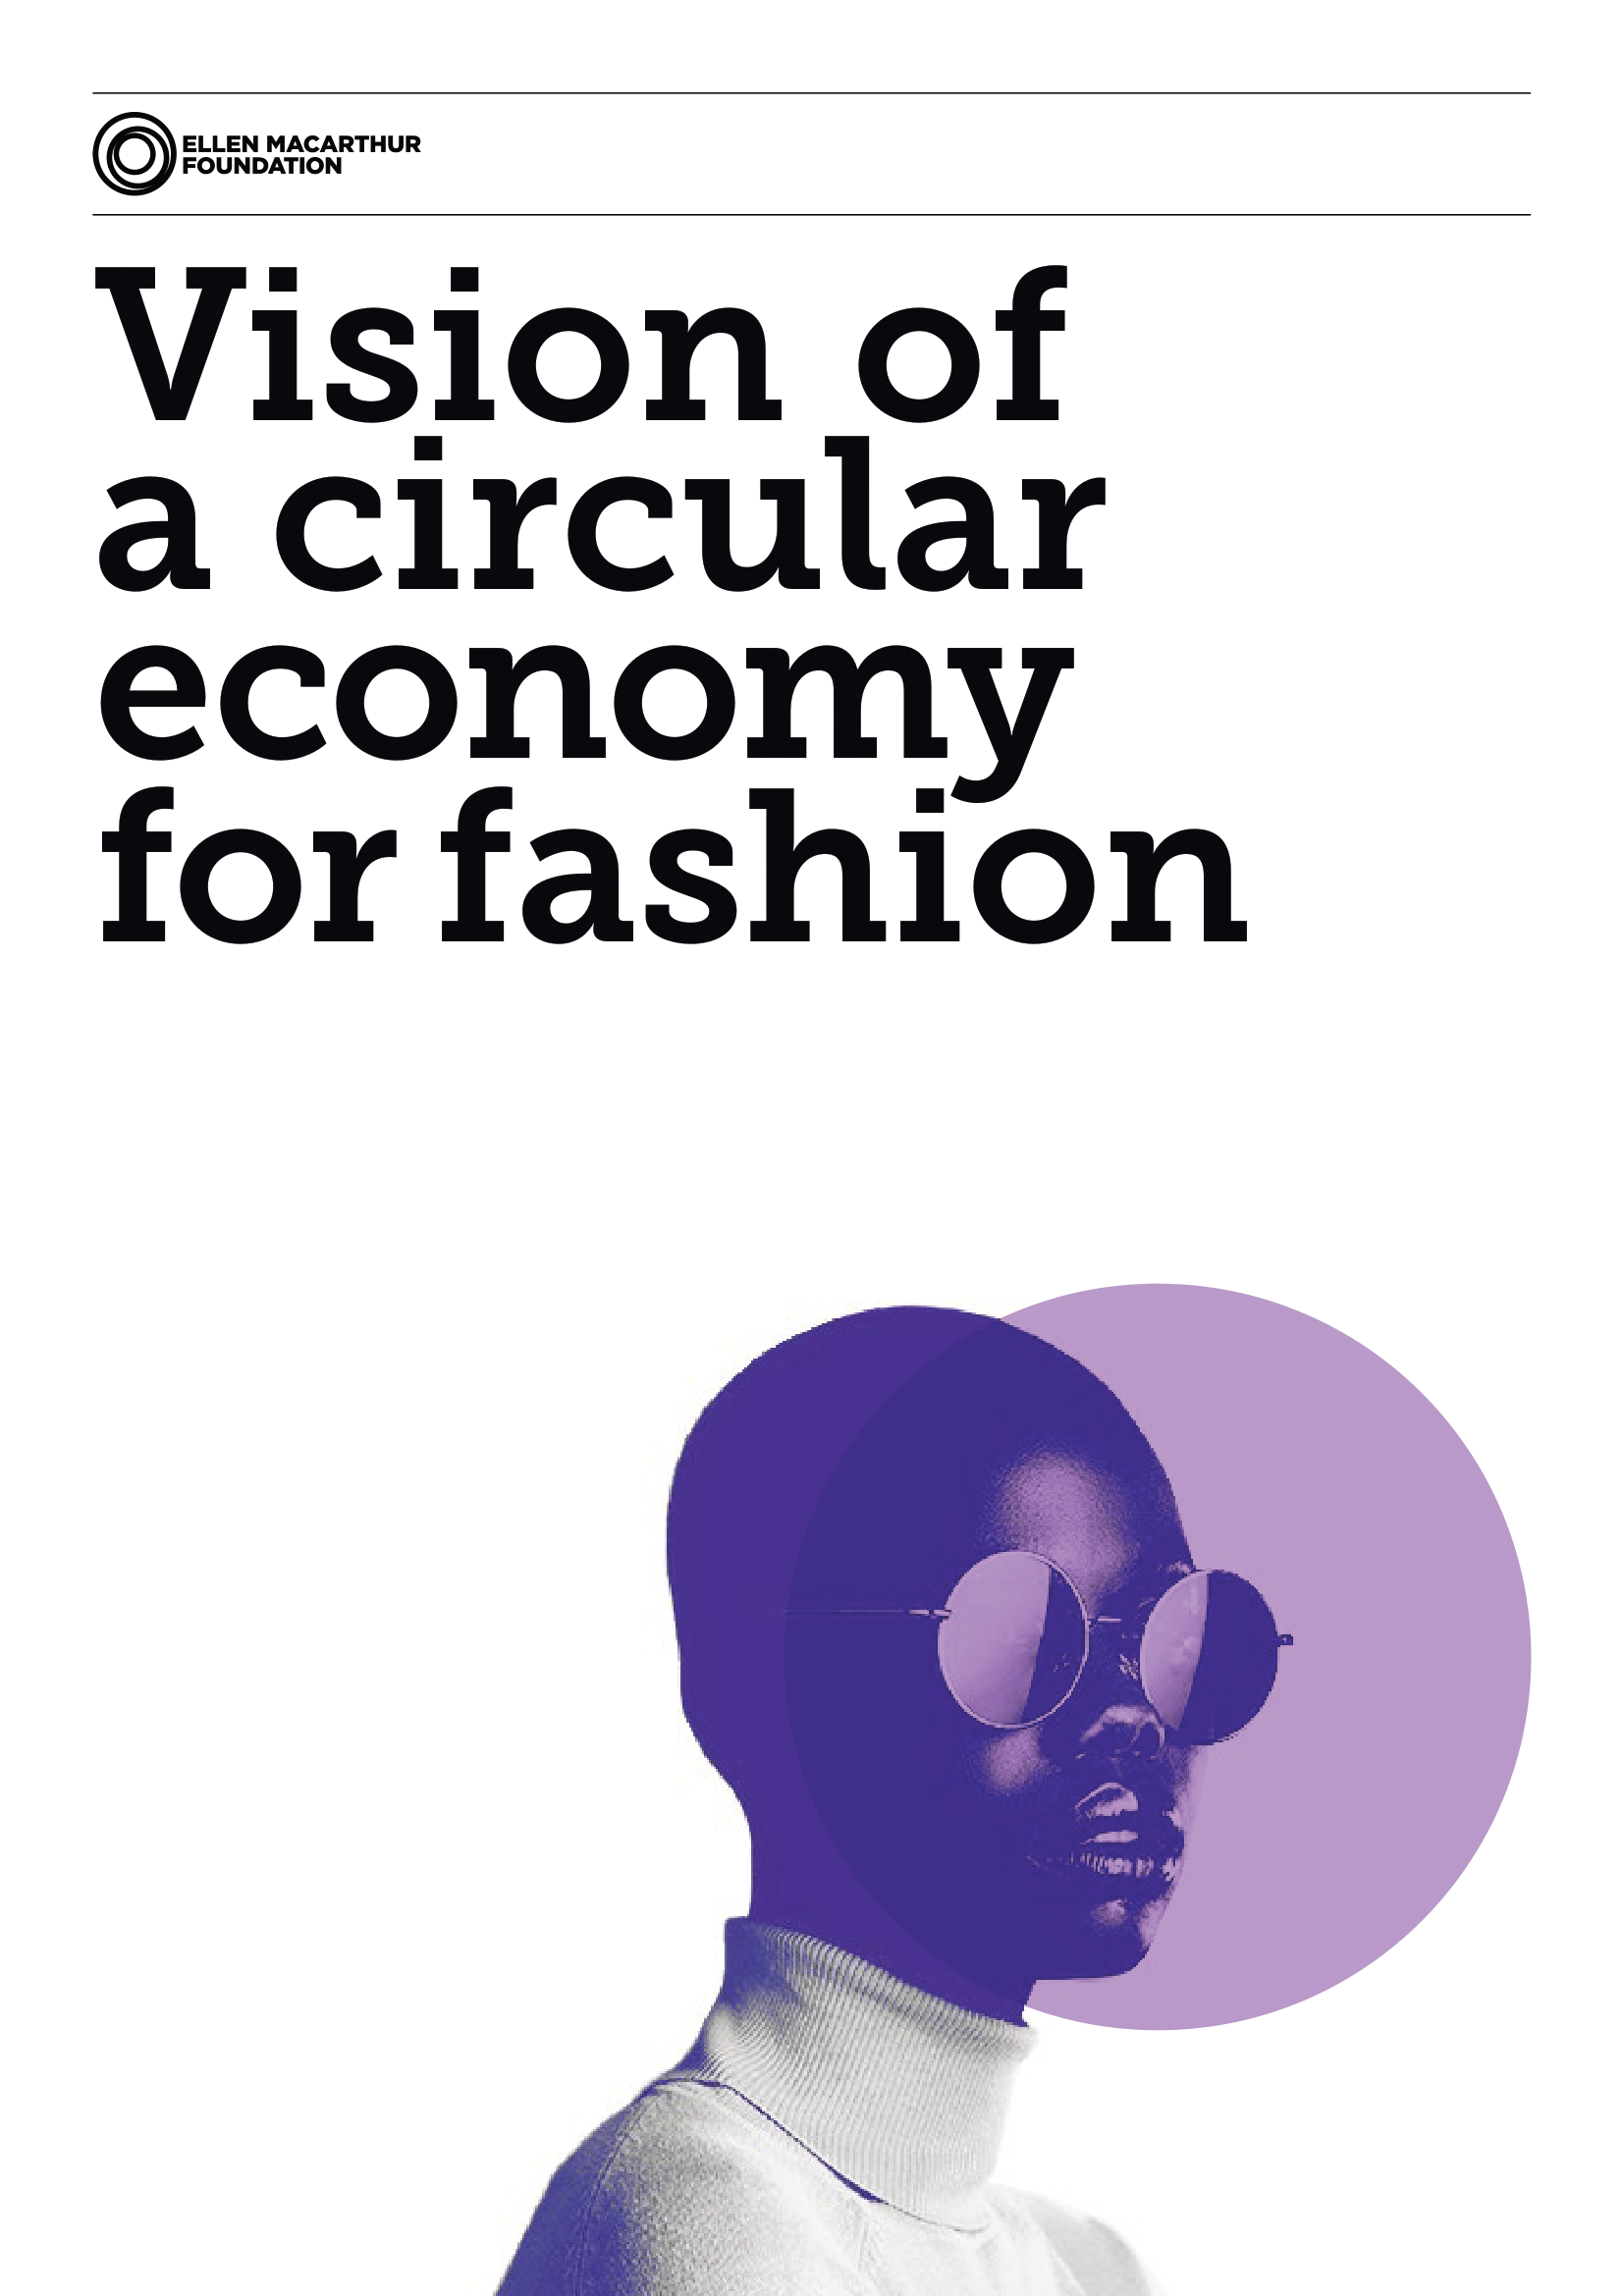 Make Fashion Circular - 2020